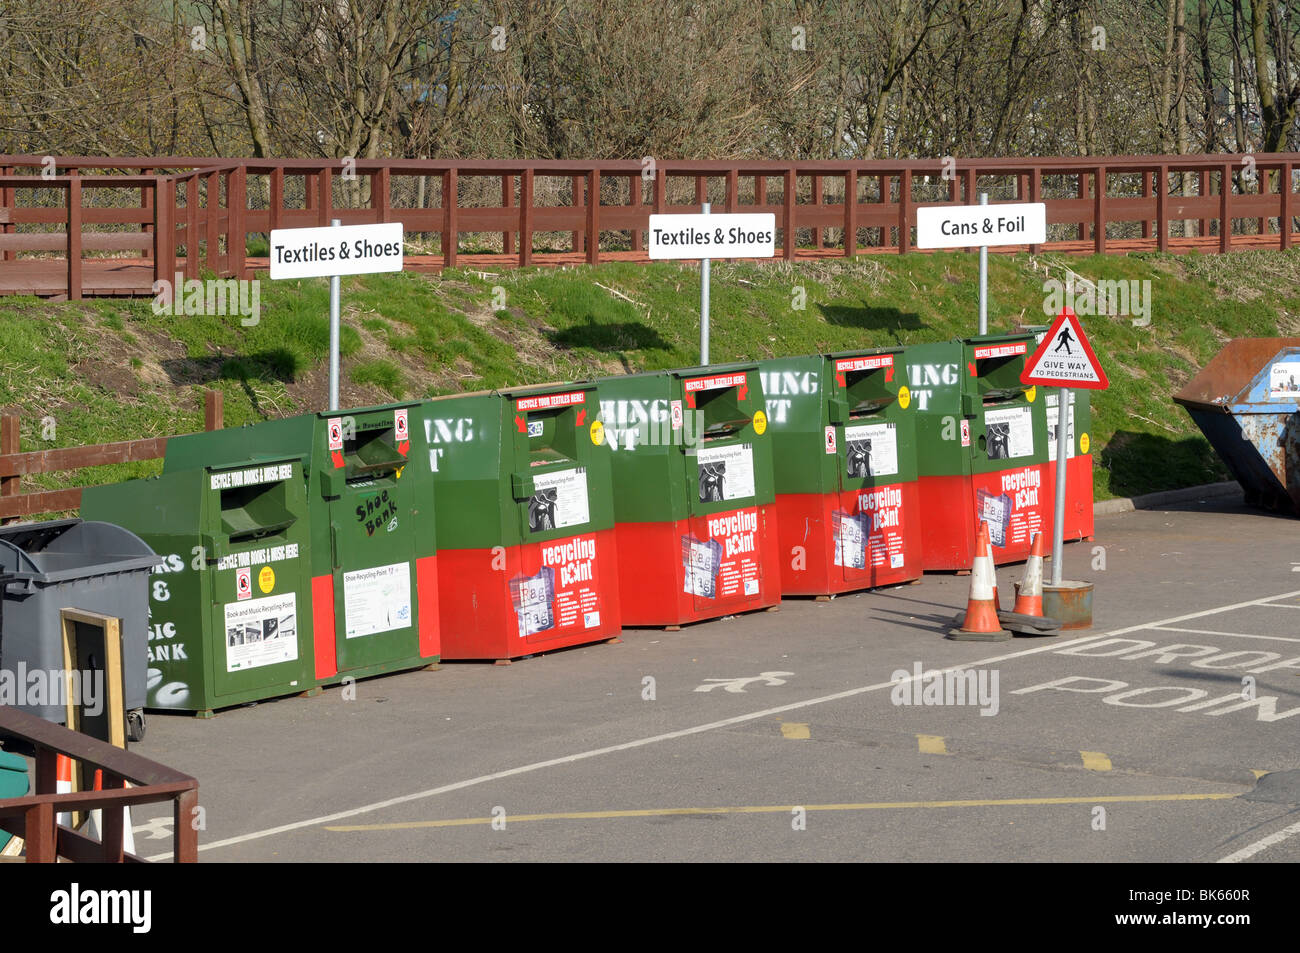 A bank of recycling bins at a council run recycling centre Stock Photo